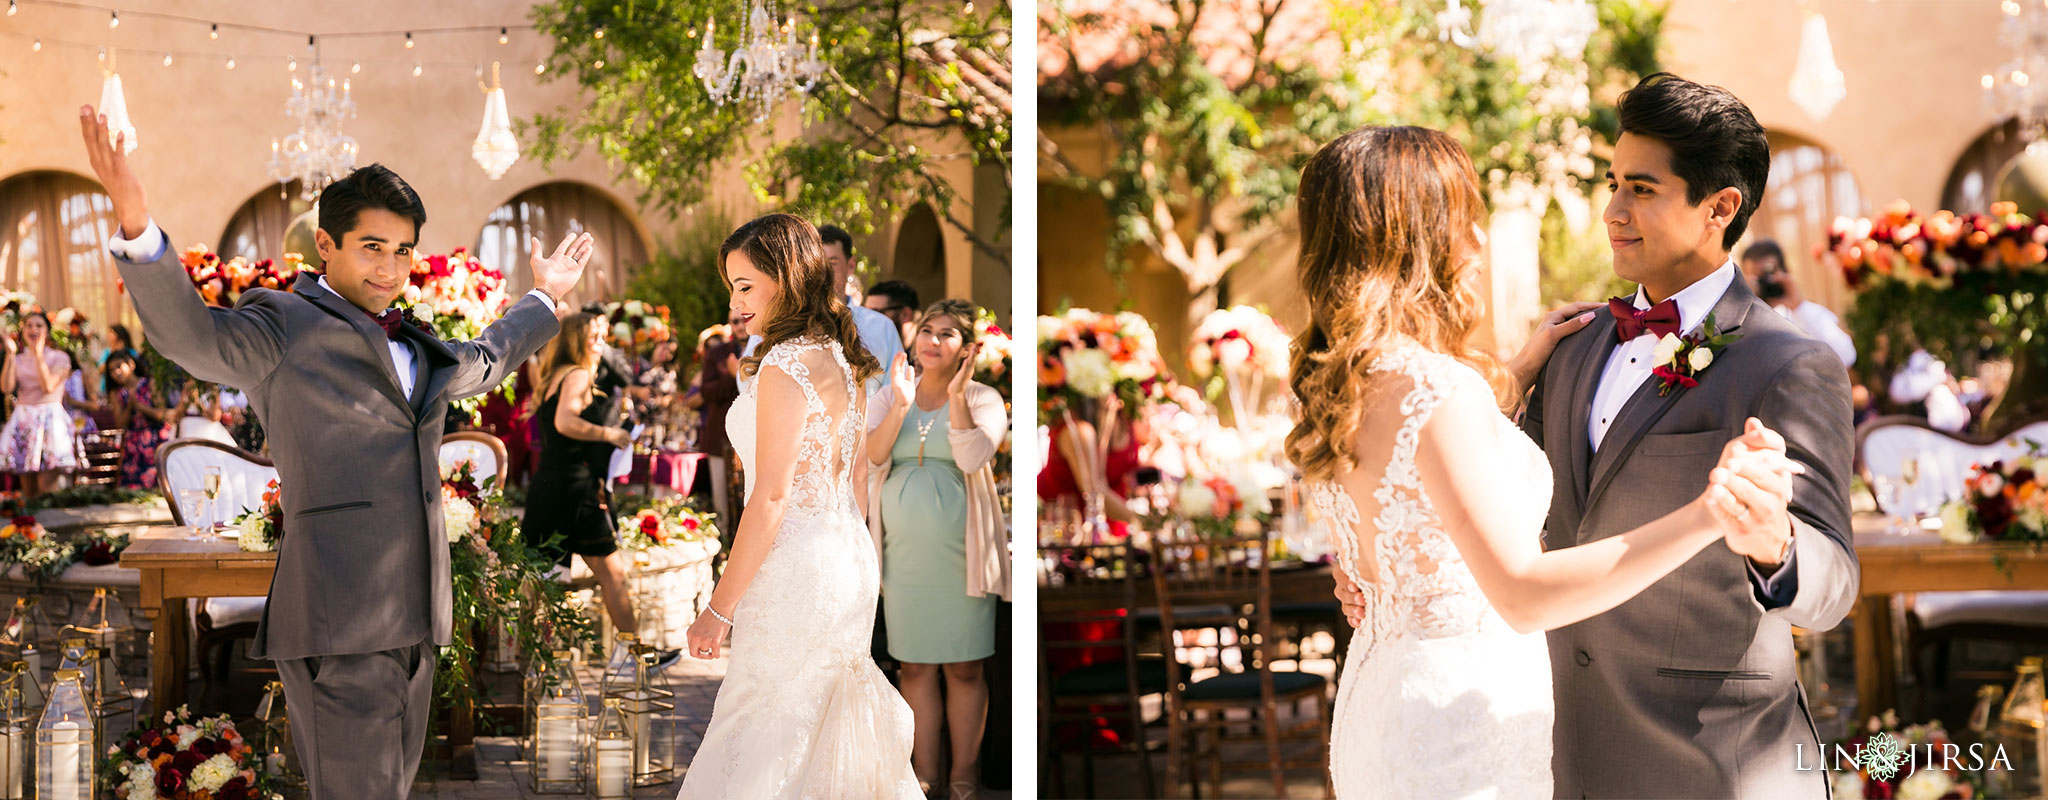 32 serra plaza san juan capistrano wedding ceremony photography